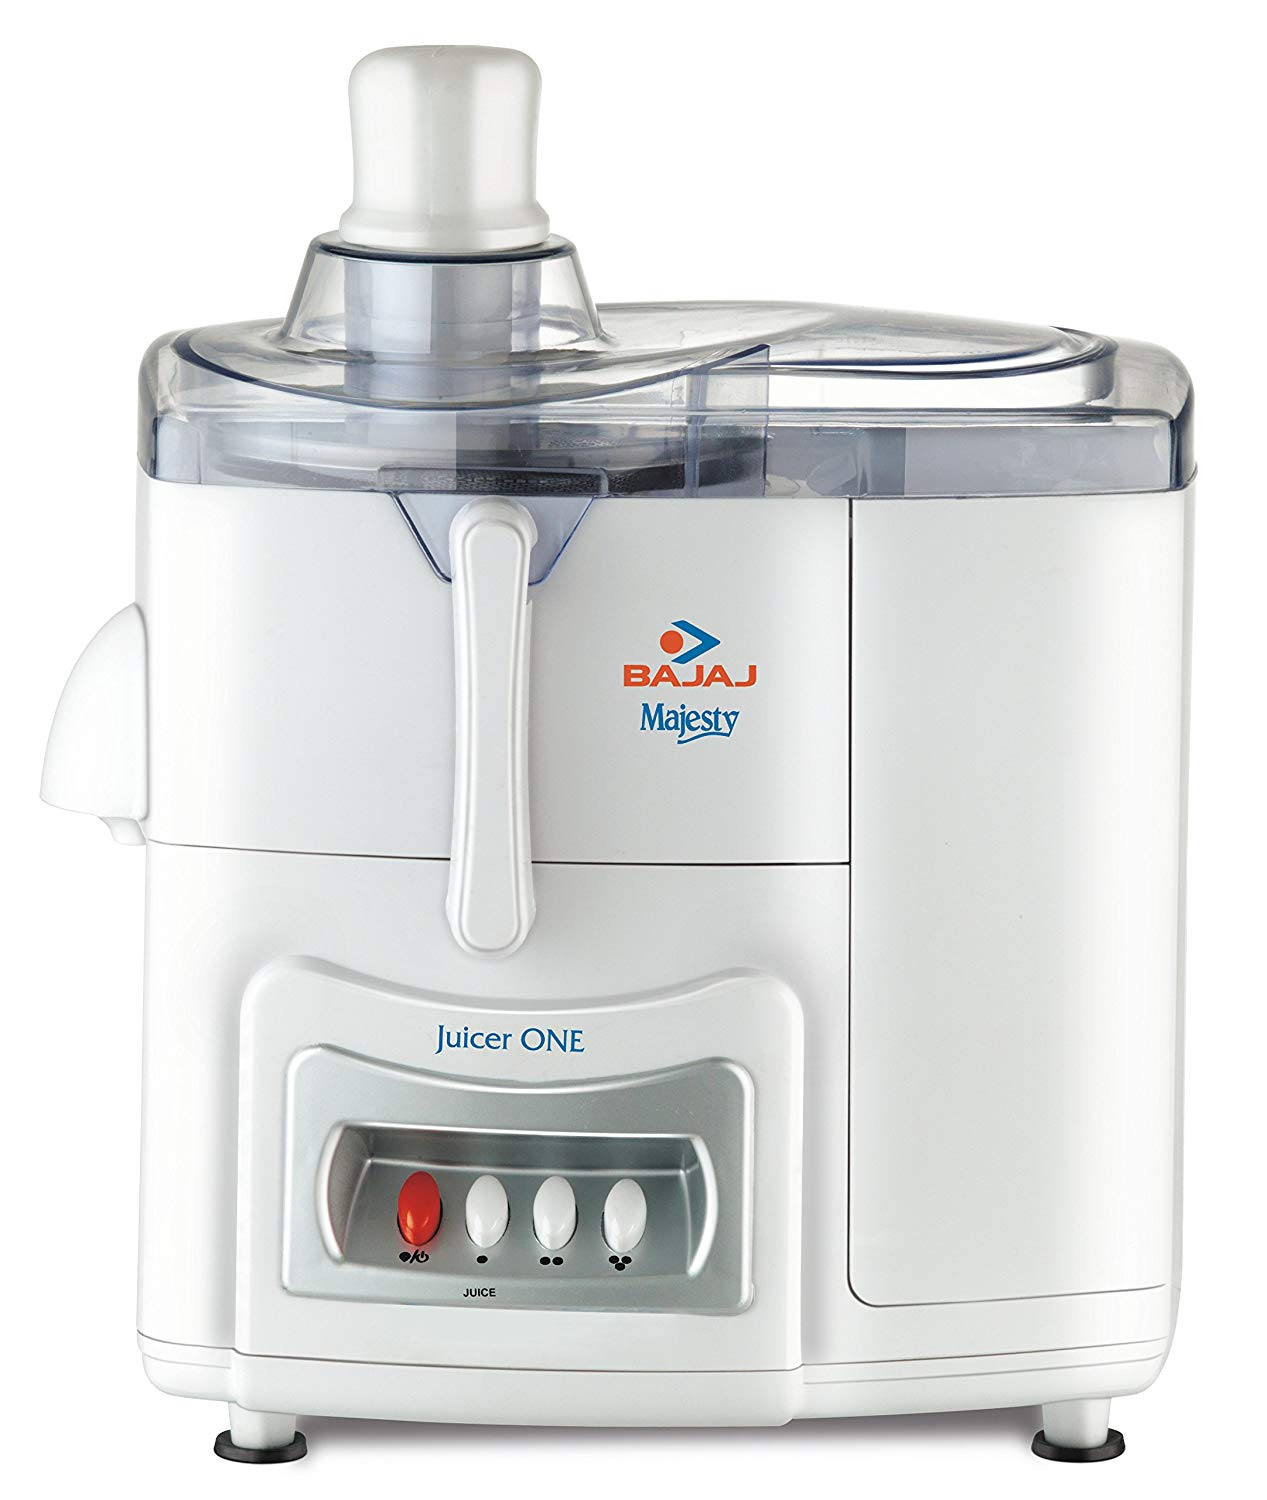 Bajaj Majesty One 500-Watt Juicer-Whiteget best offers deals free and coupons online at buythevalue.in